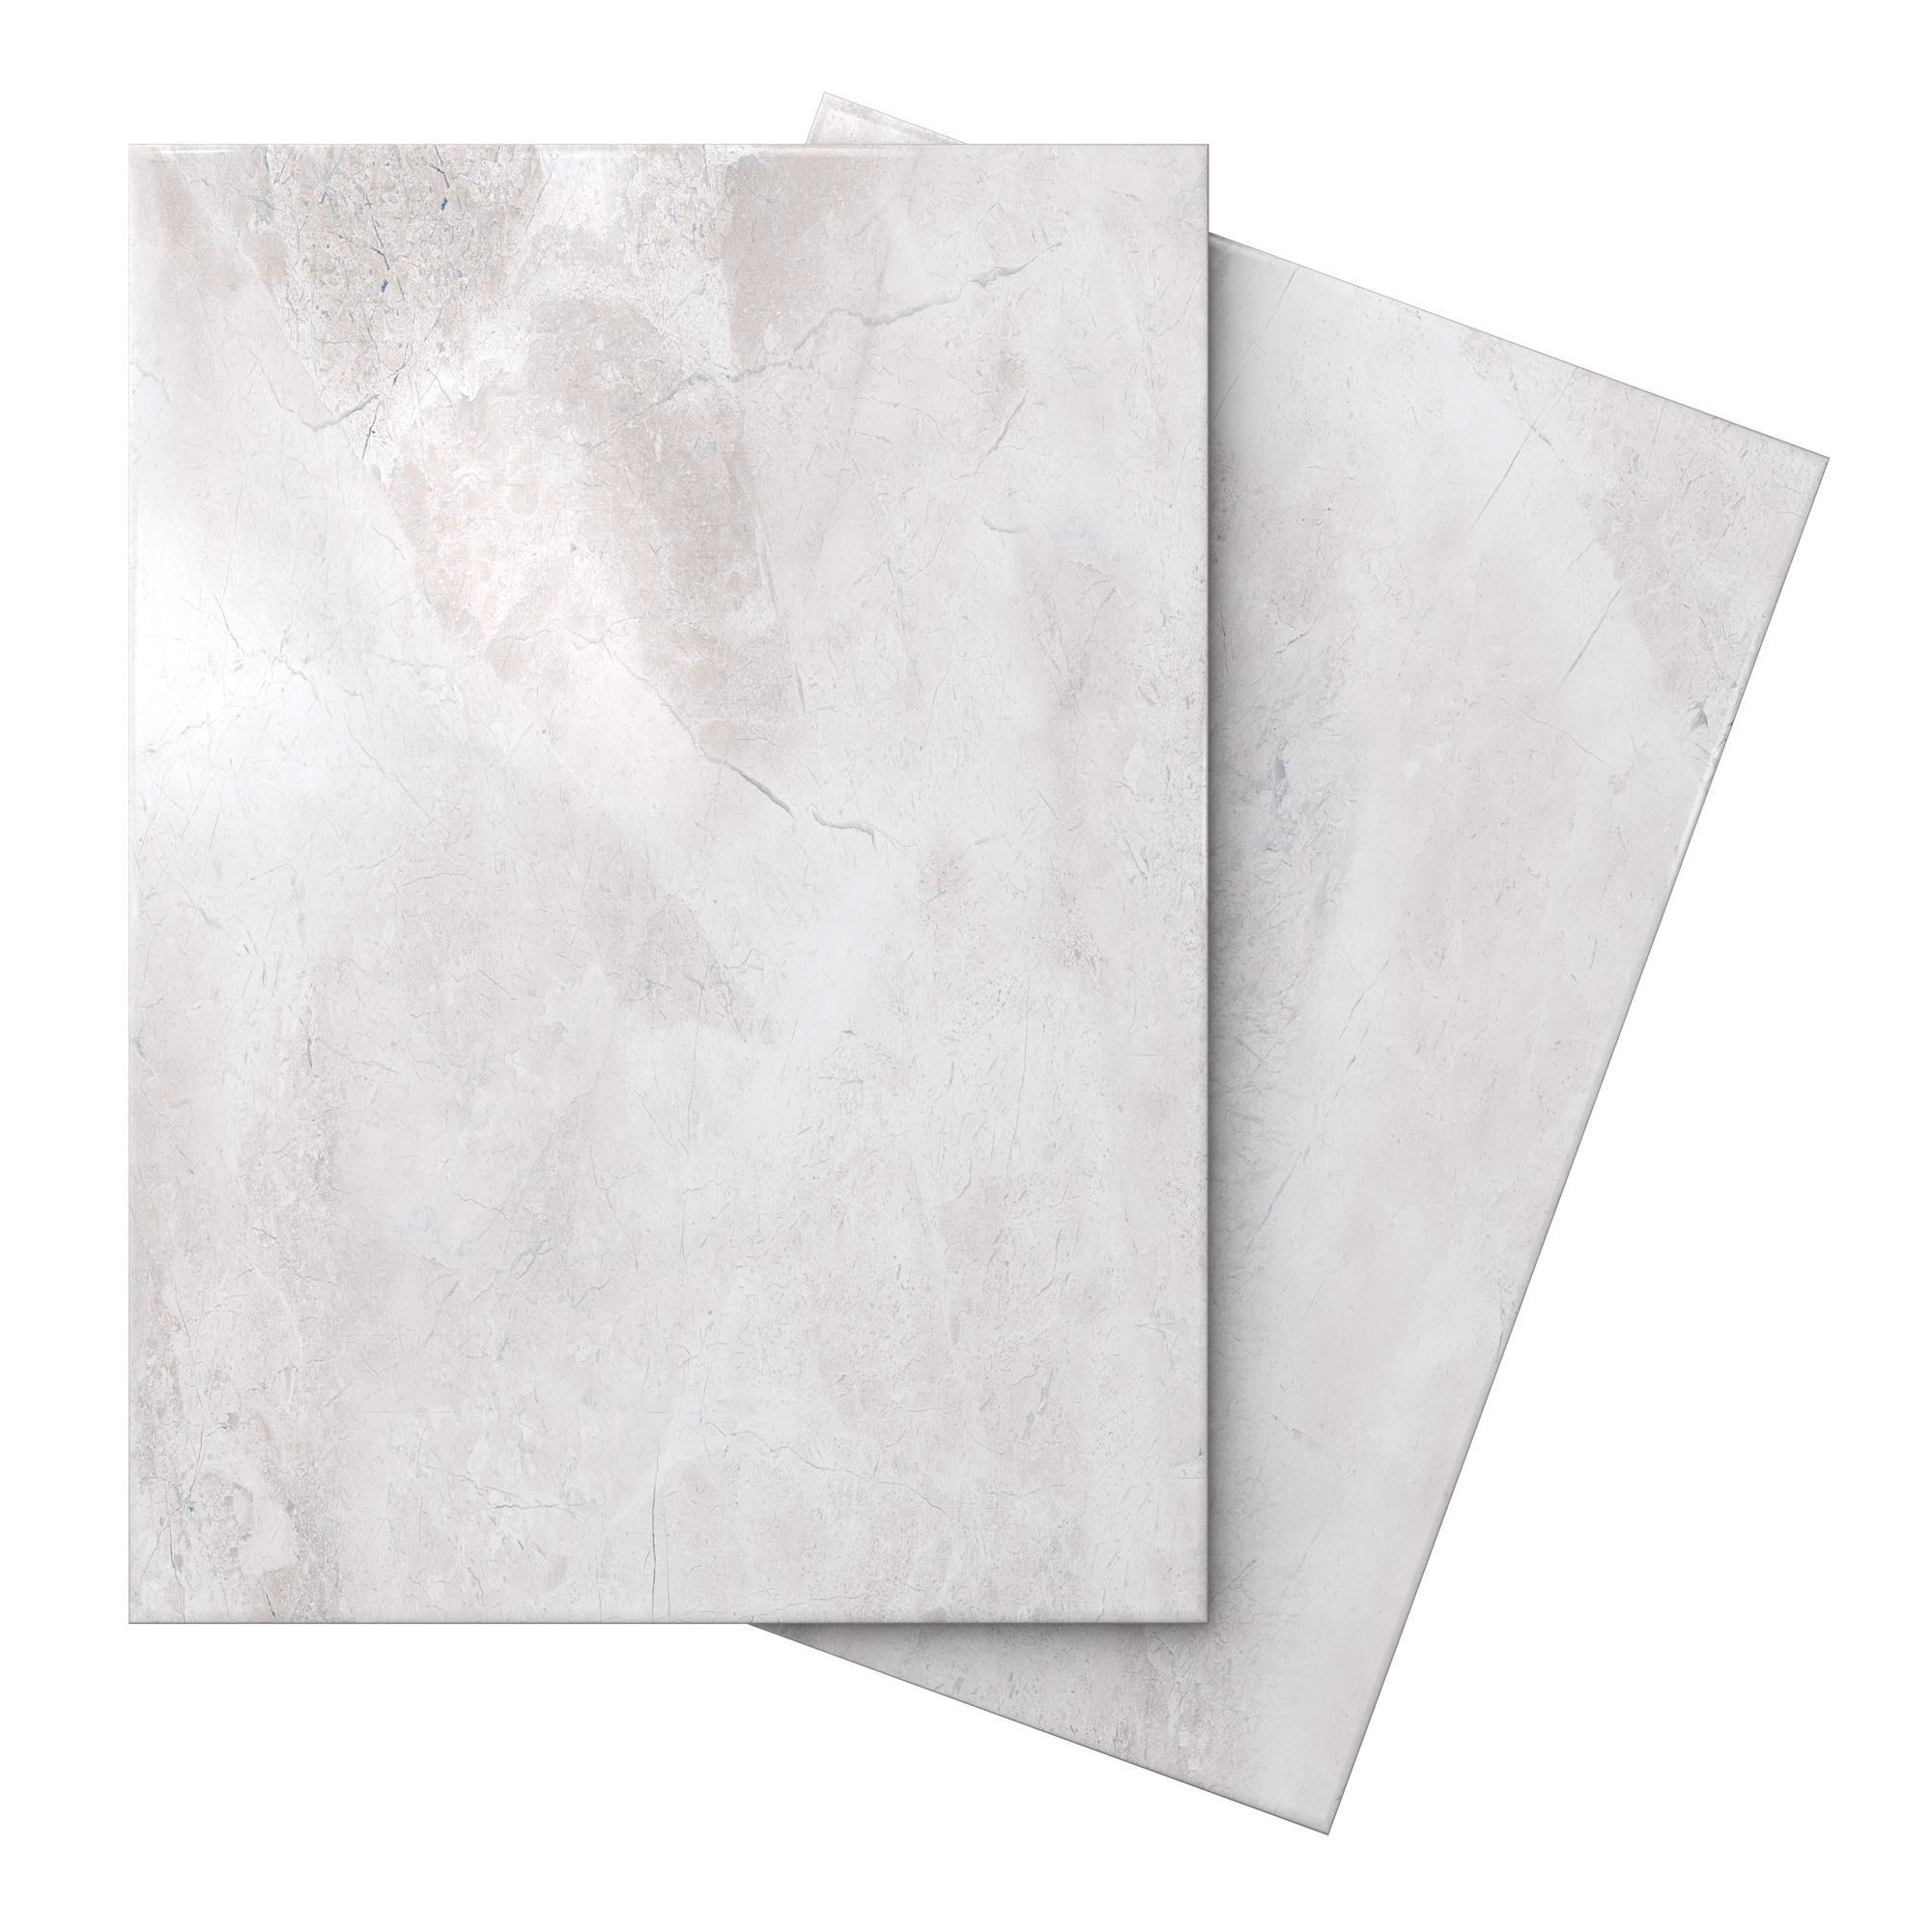 White and grey marble effect wall tiles illusion white marble effect ceramic wall floor tile pack of 10 dailygadgetfo Gallery